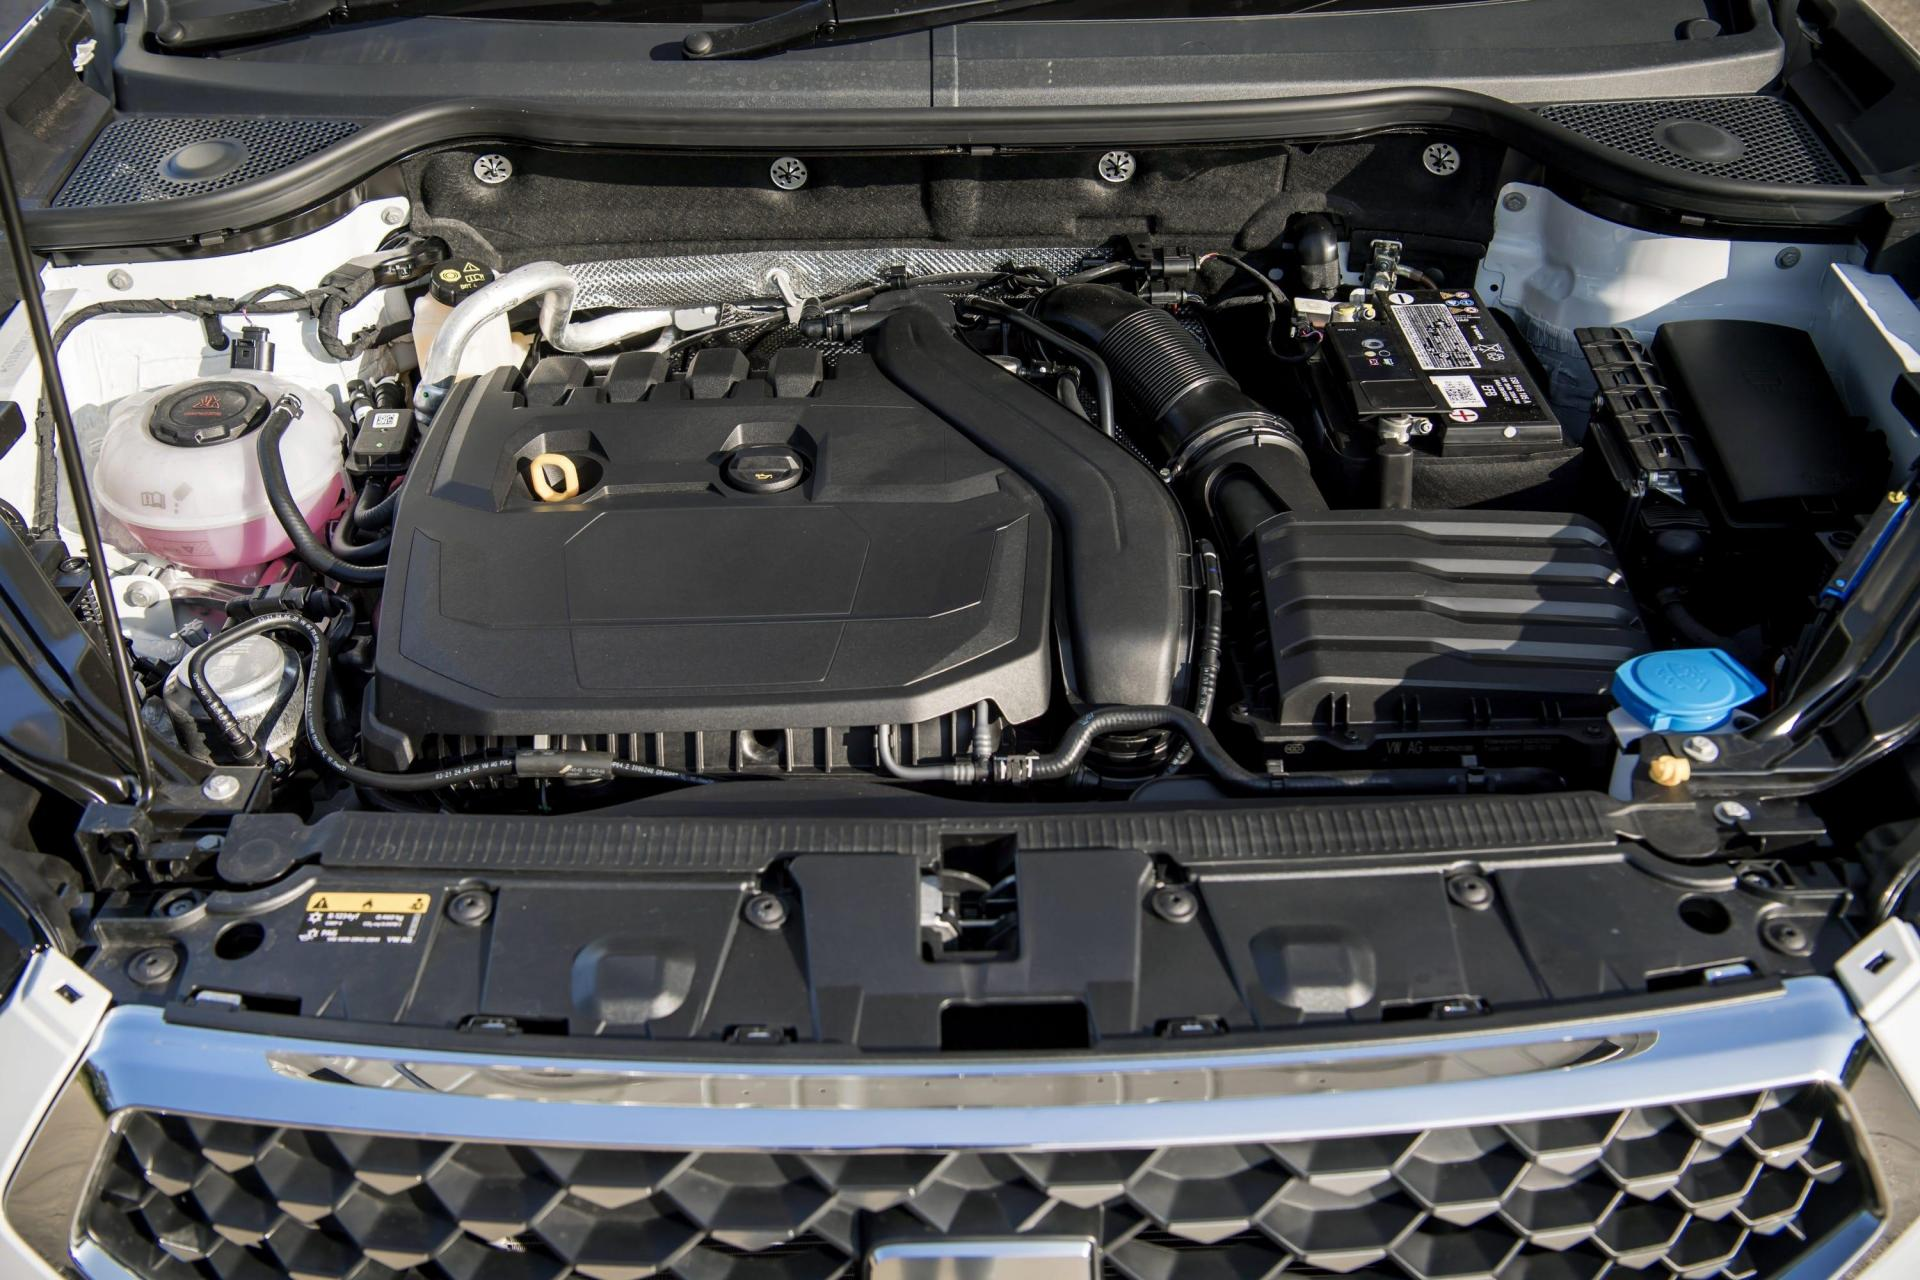 The Ateca is available with a variety of petrol and diesel engines.